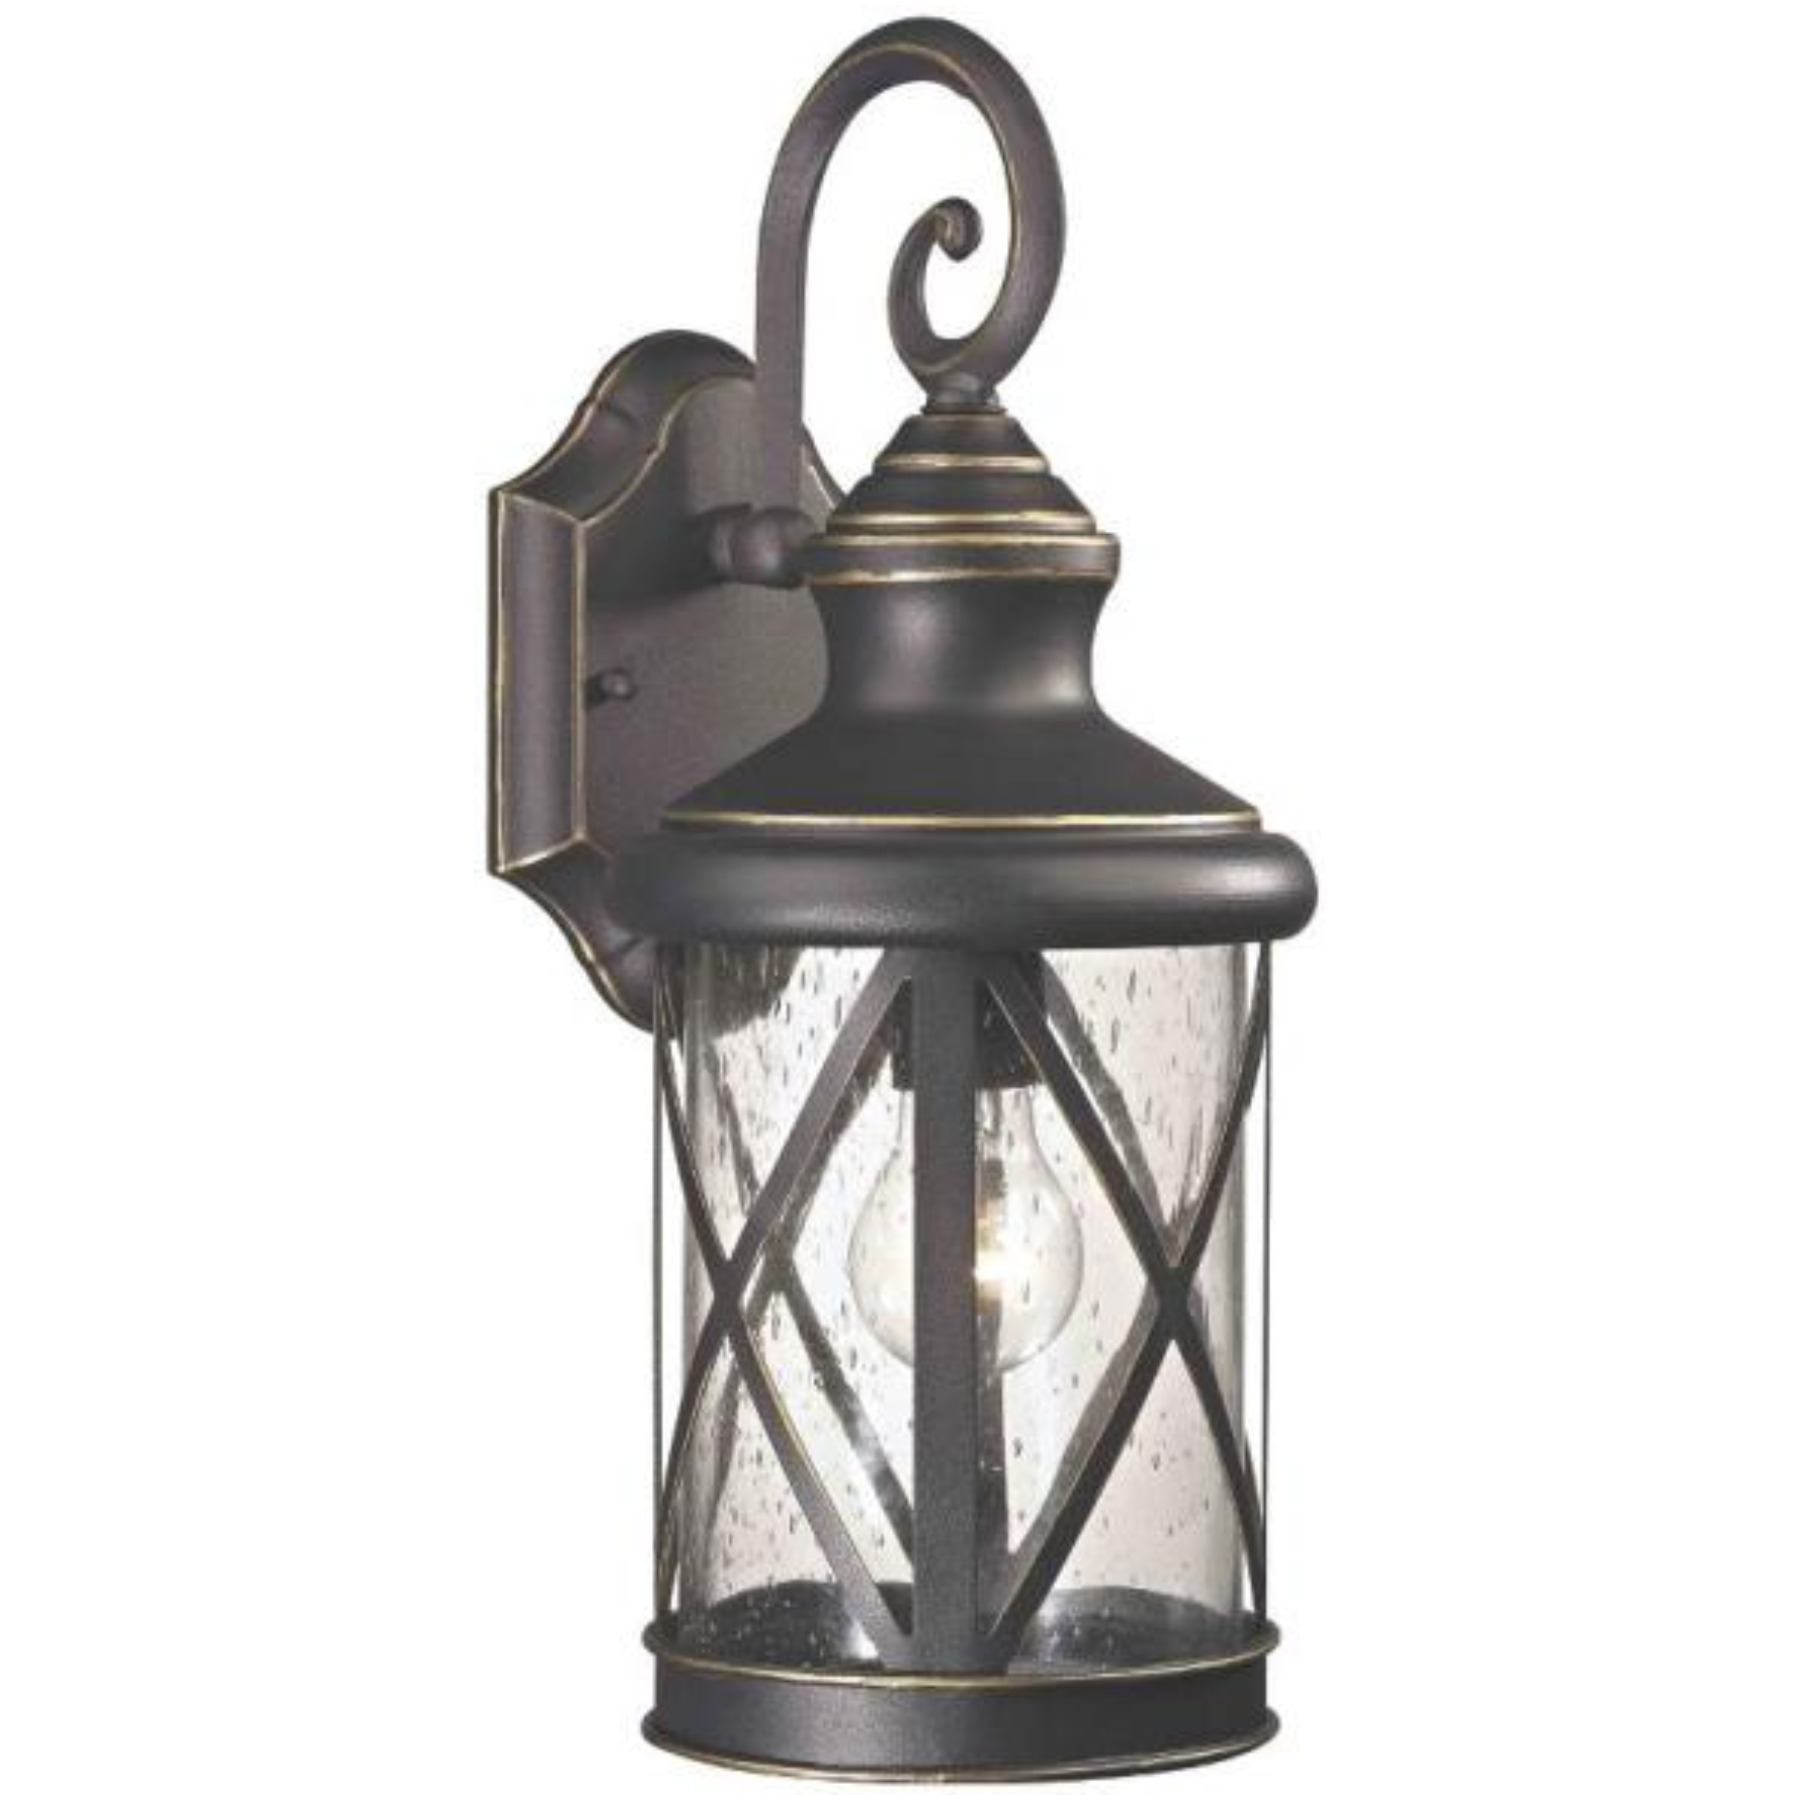 LANTERN OUTDR WALL ORB 1 LIGHT